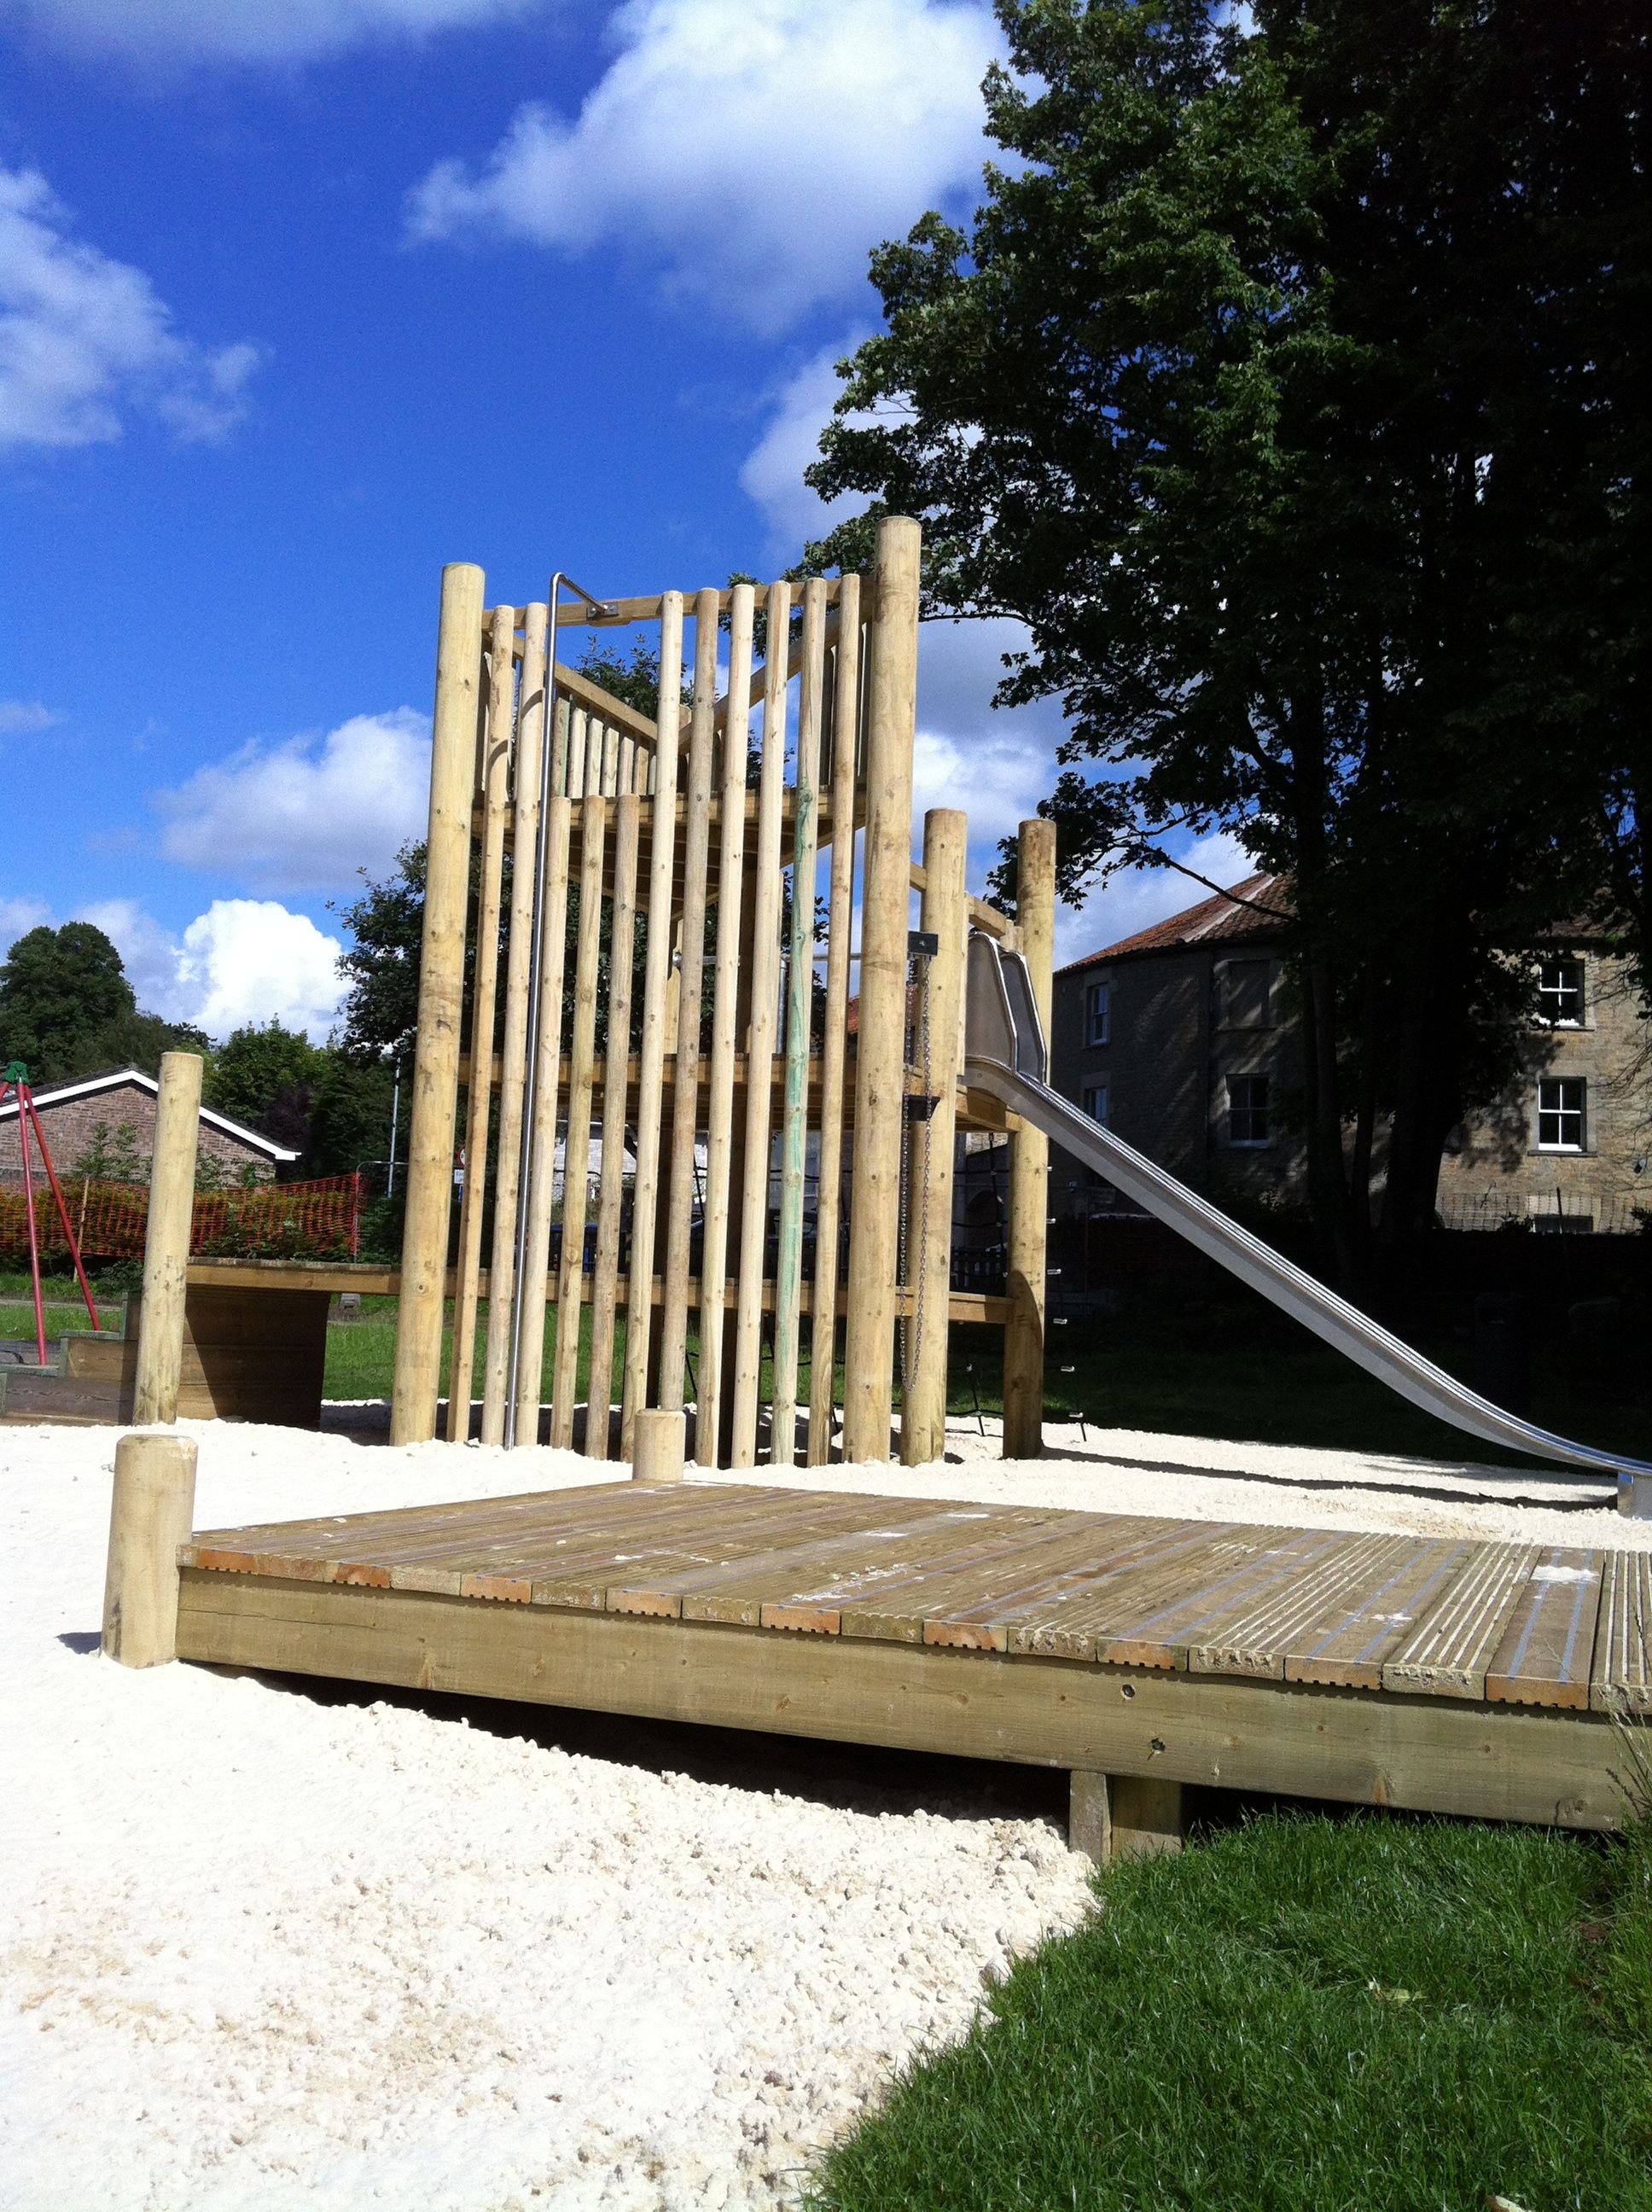 Bespoke tower & sandpit in a public play area in Frome